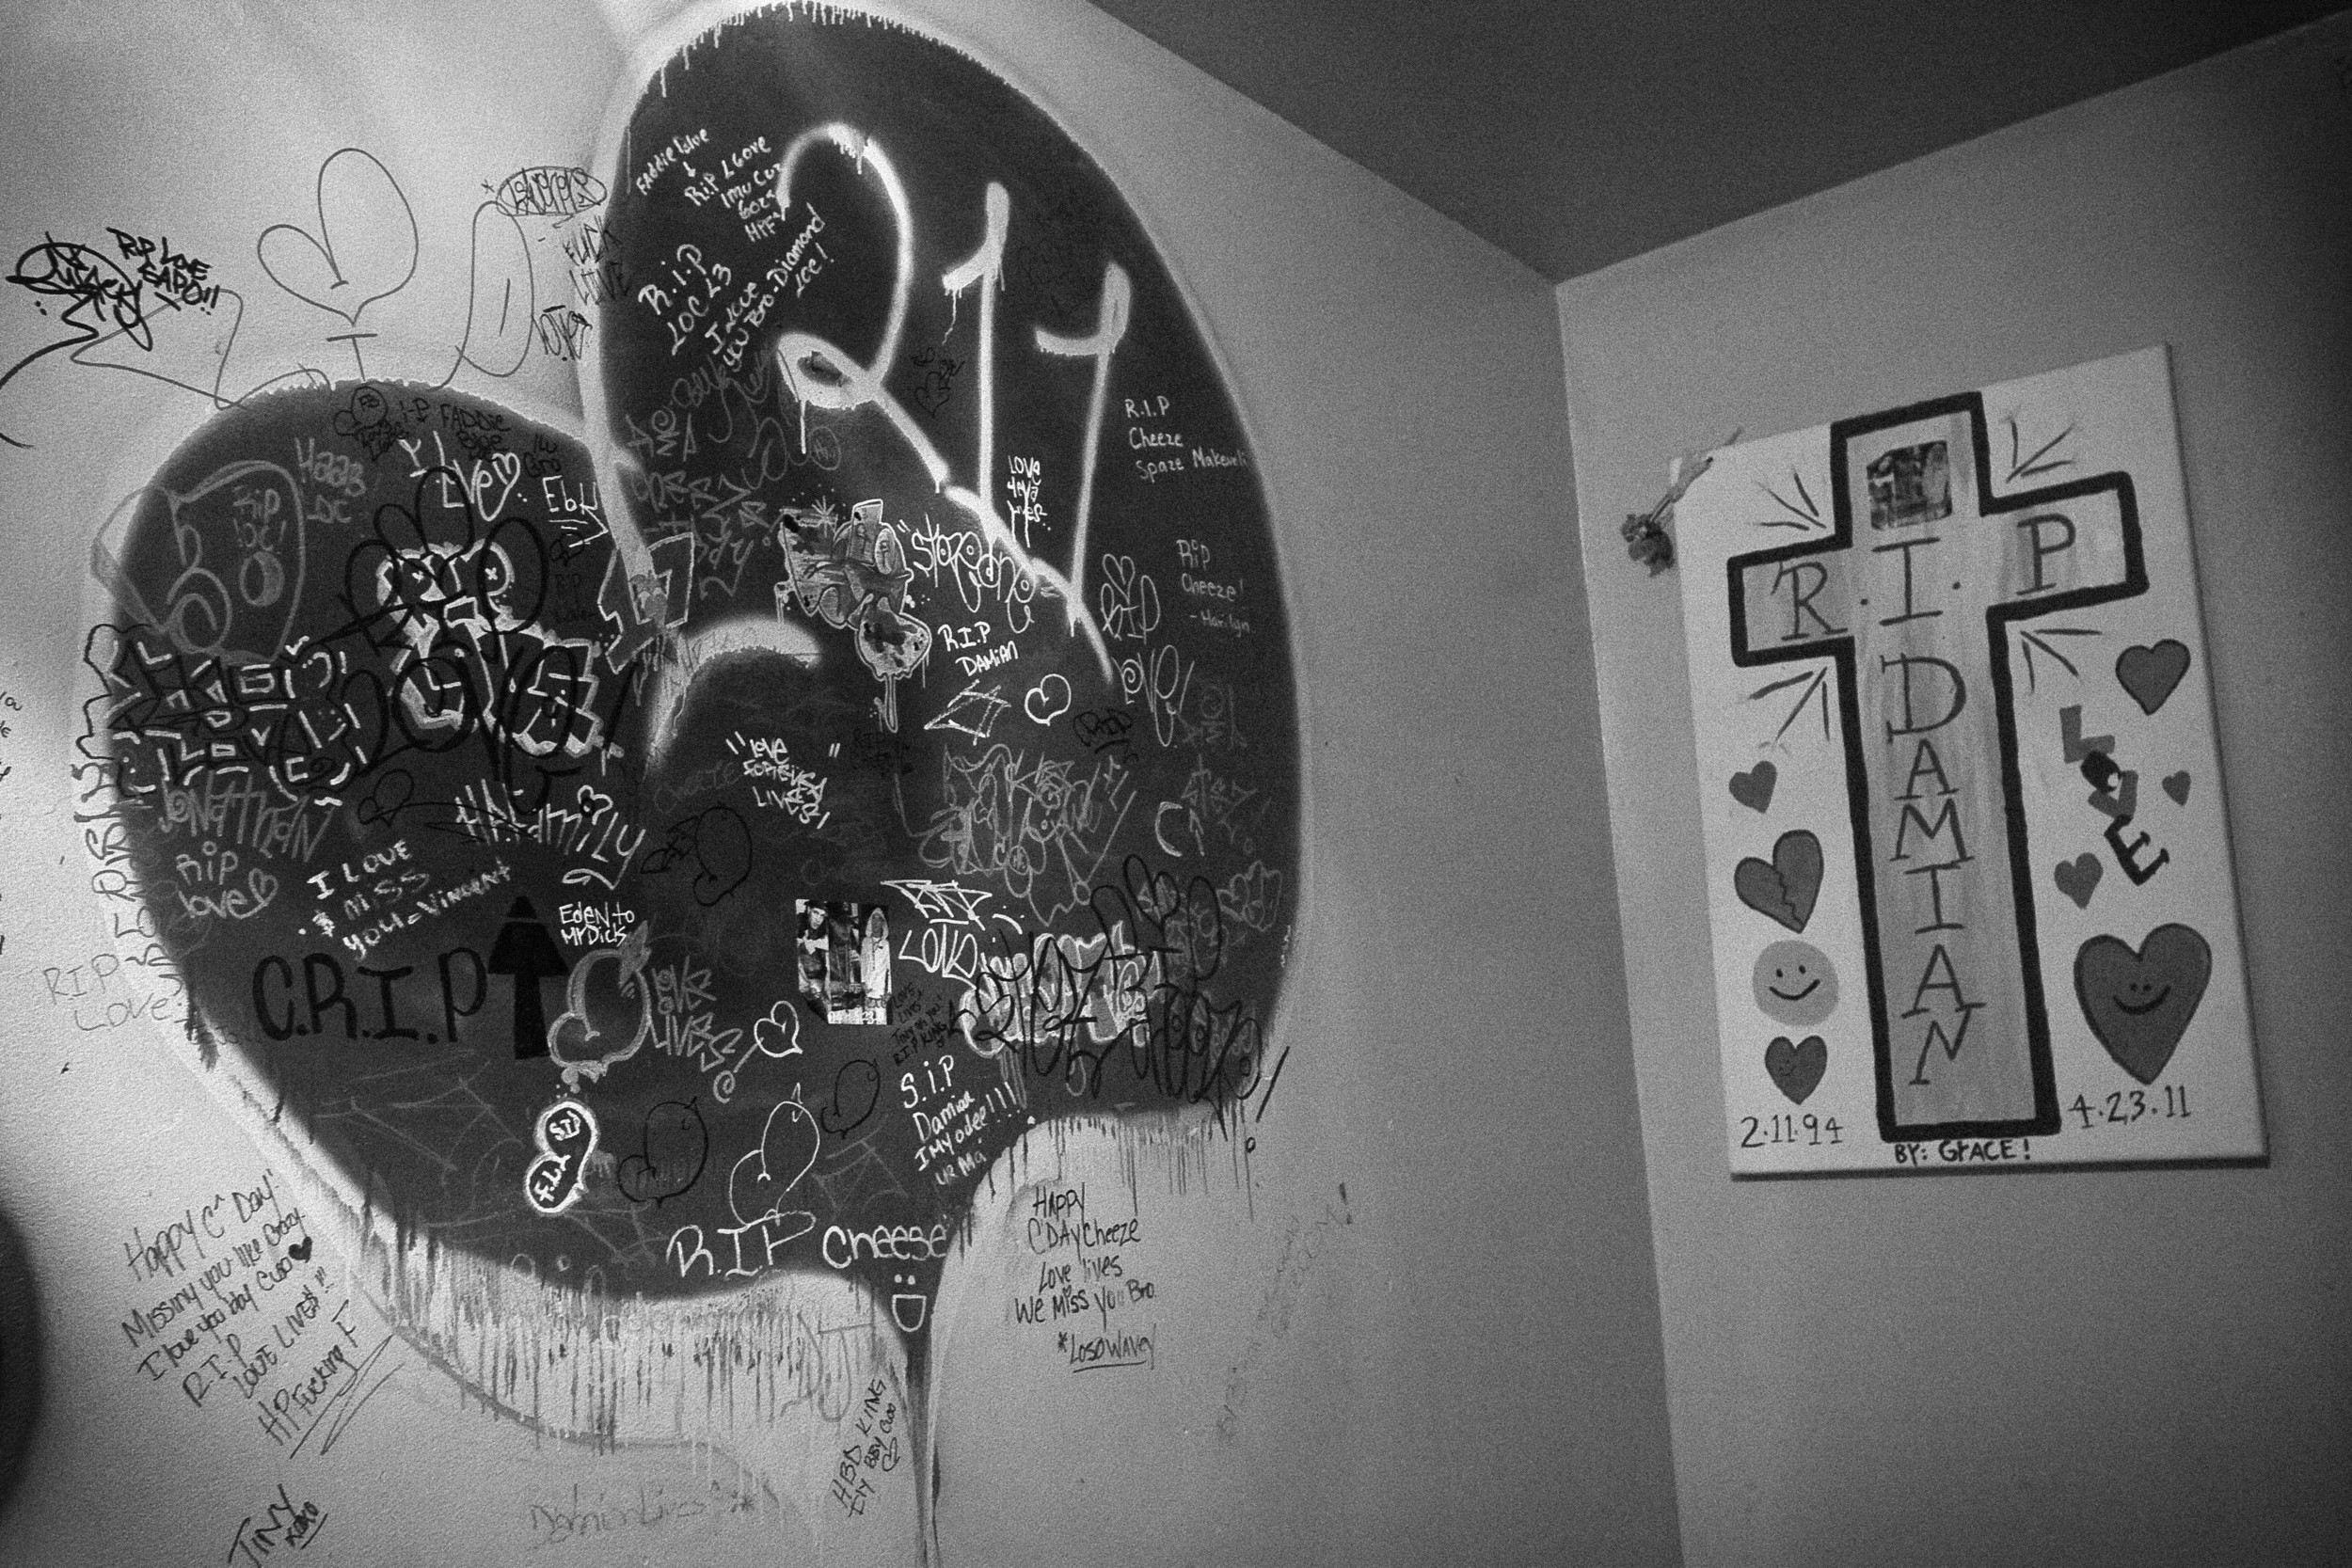 LOVE LIVES. Original LOVE Tag in Tim's House. Hunts Point, the Bronx, NYC. August 2012.